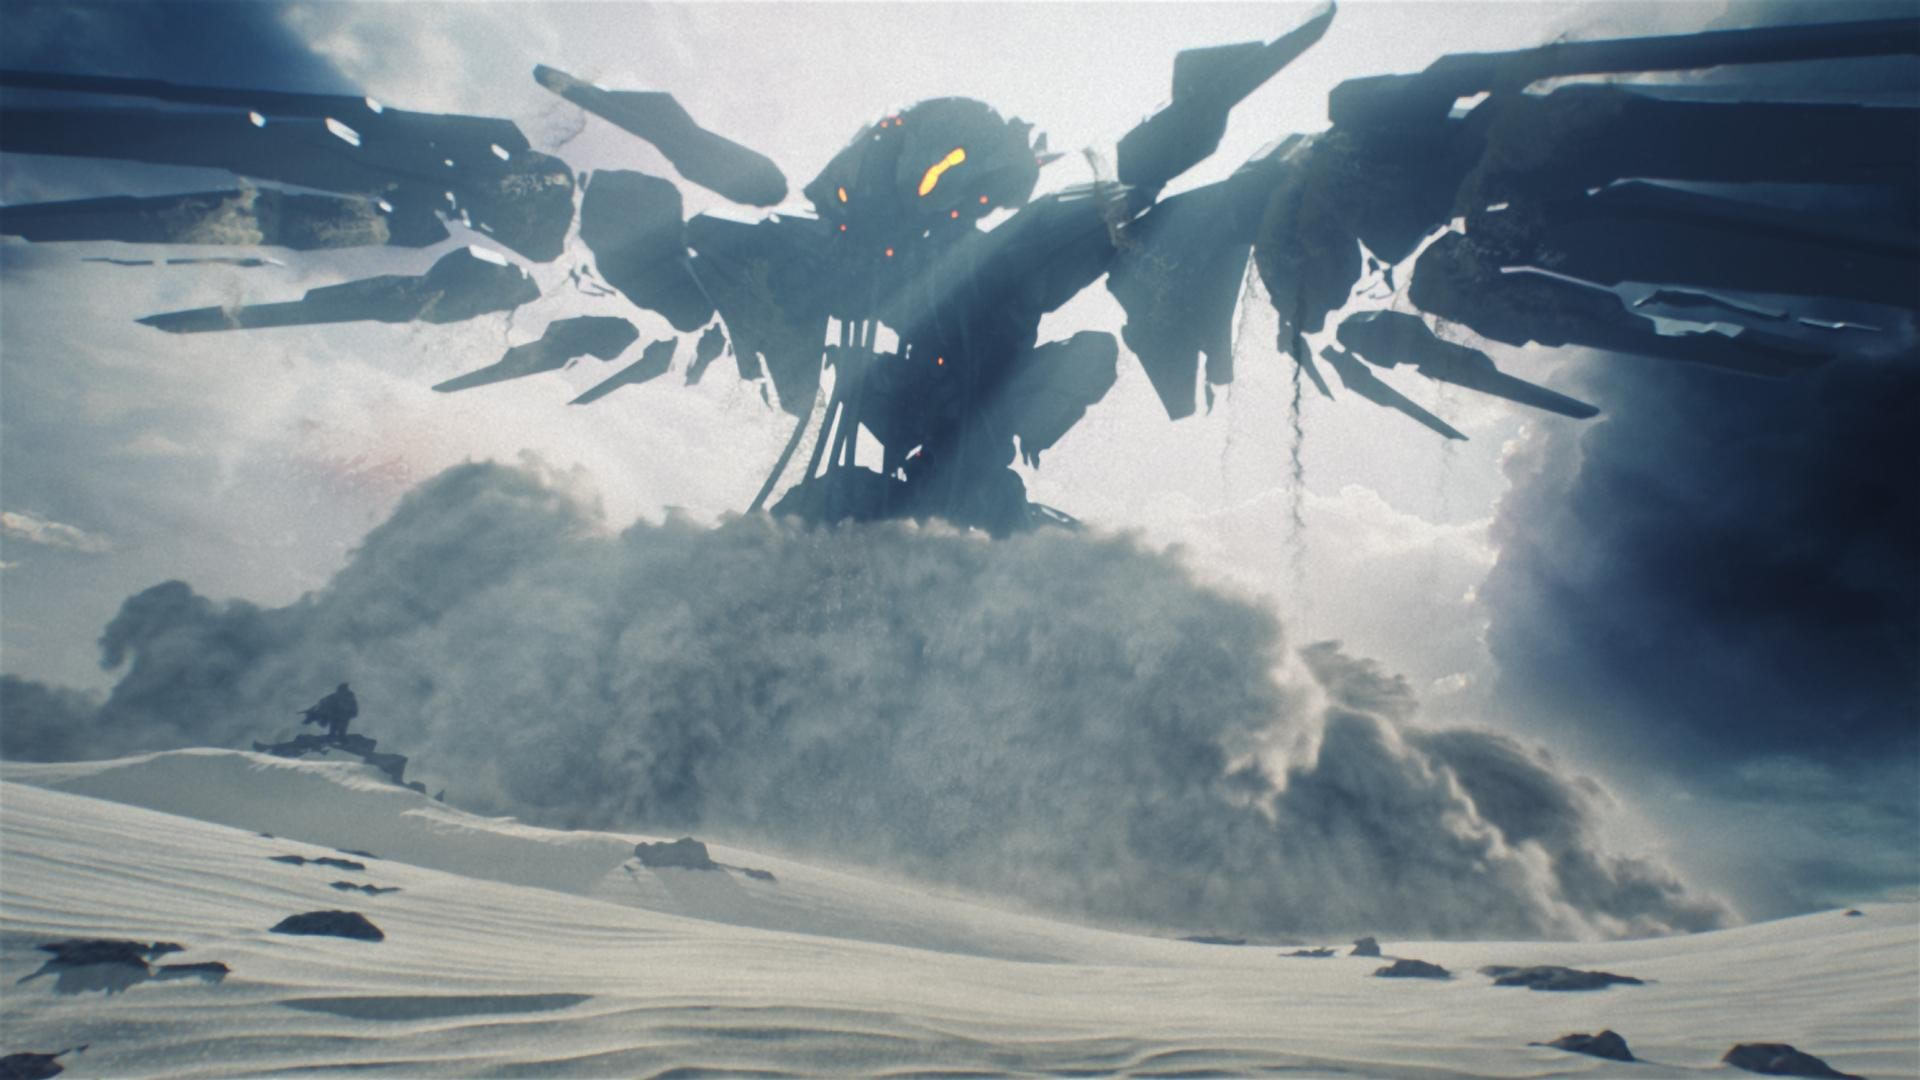 Live halo wallpapers 51 images - Halo 5 guardians wallpaper 1920x1080 ...